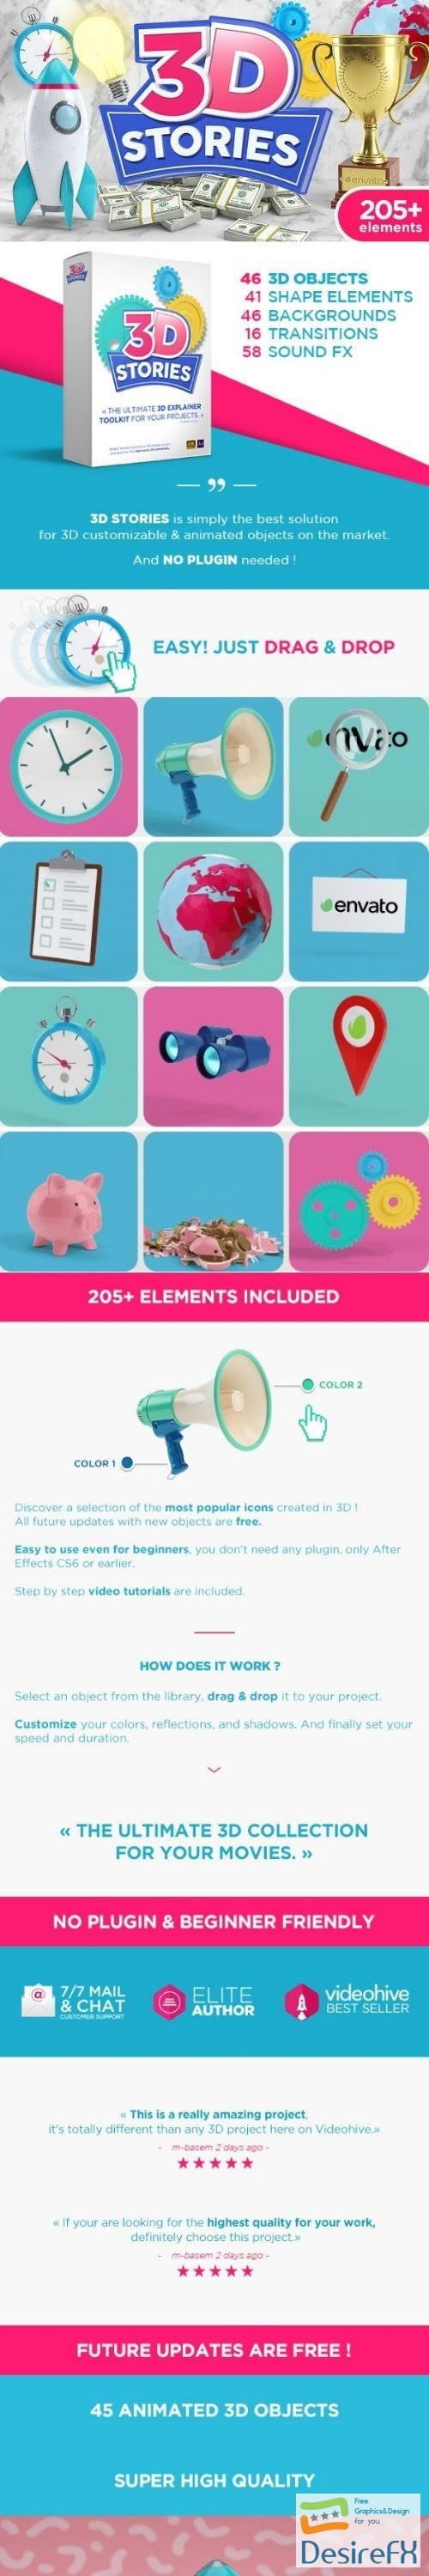 after-effects-projects - Videohive 3D Animated Icons Toolkit V.2 21562016